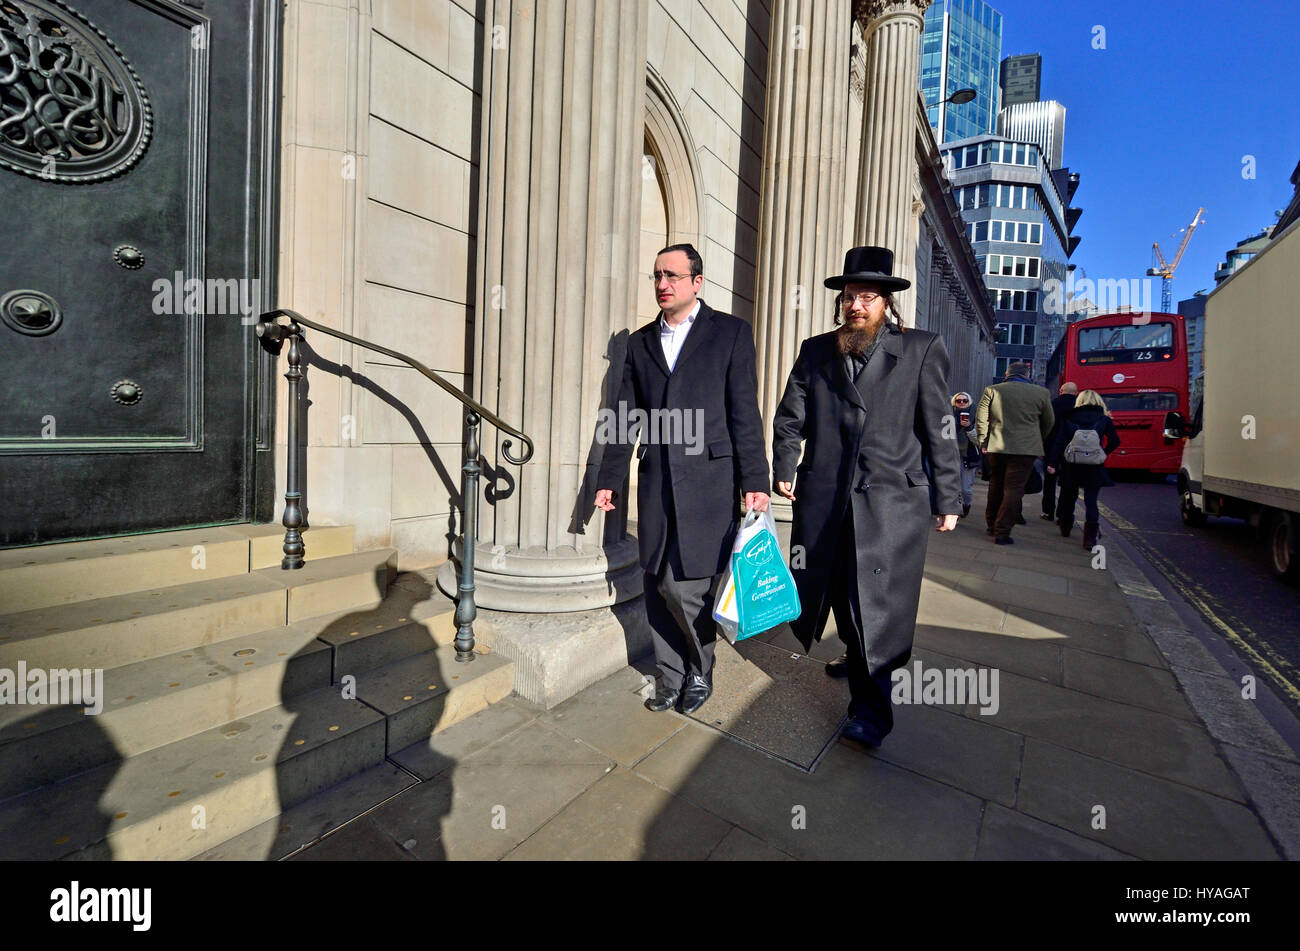 London, England, UK. Two Jewish men by the Bank of England - Stock Image